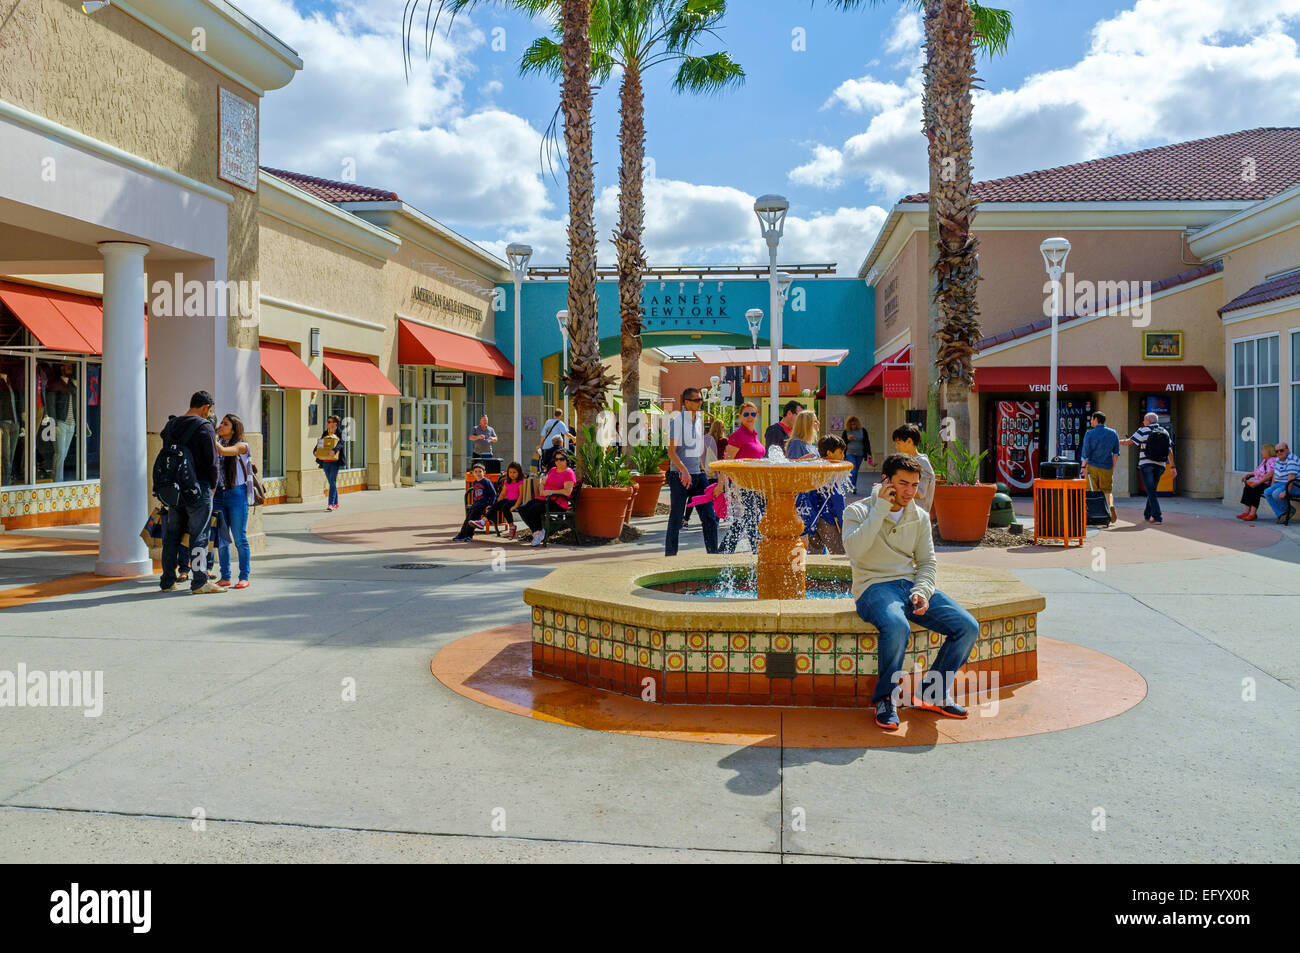 Shoppers outside at the Orlando International Premium Outlets shopping Mall, International Drive, Orlando, Florida, - Stock Image